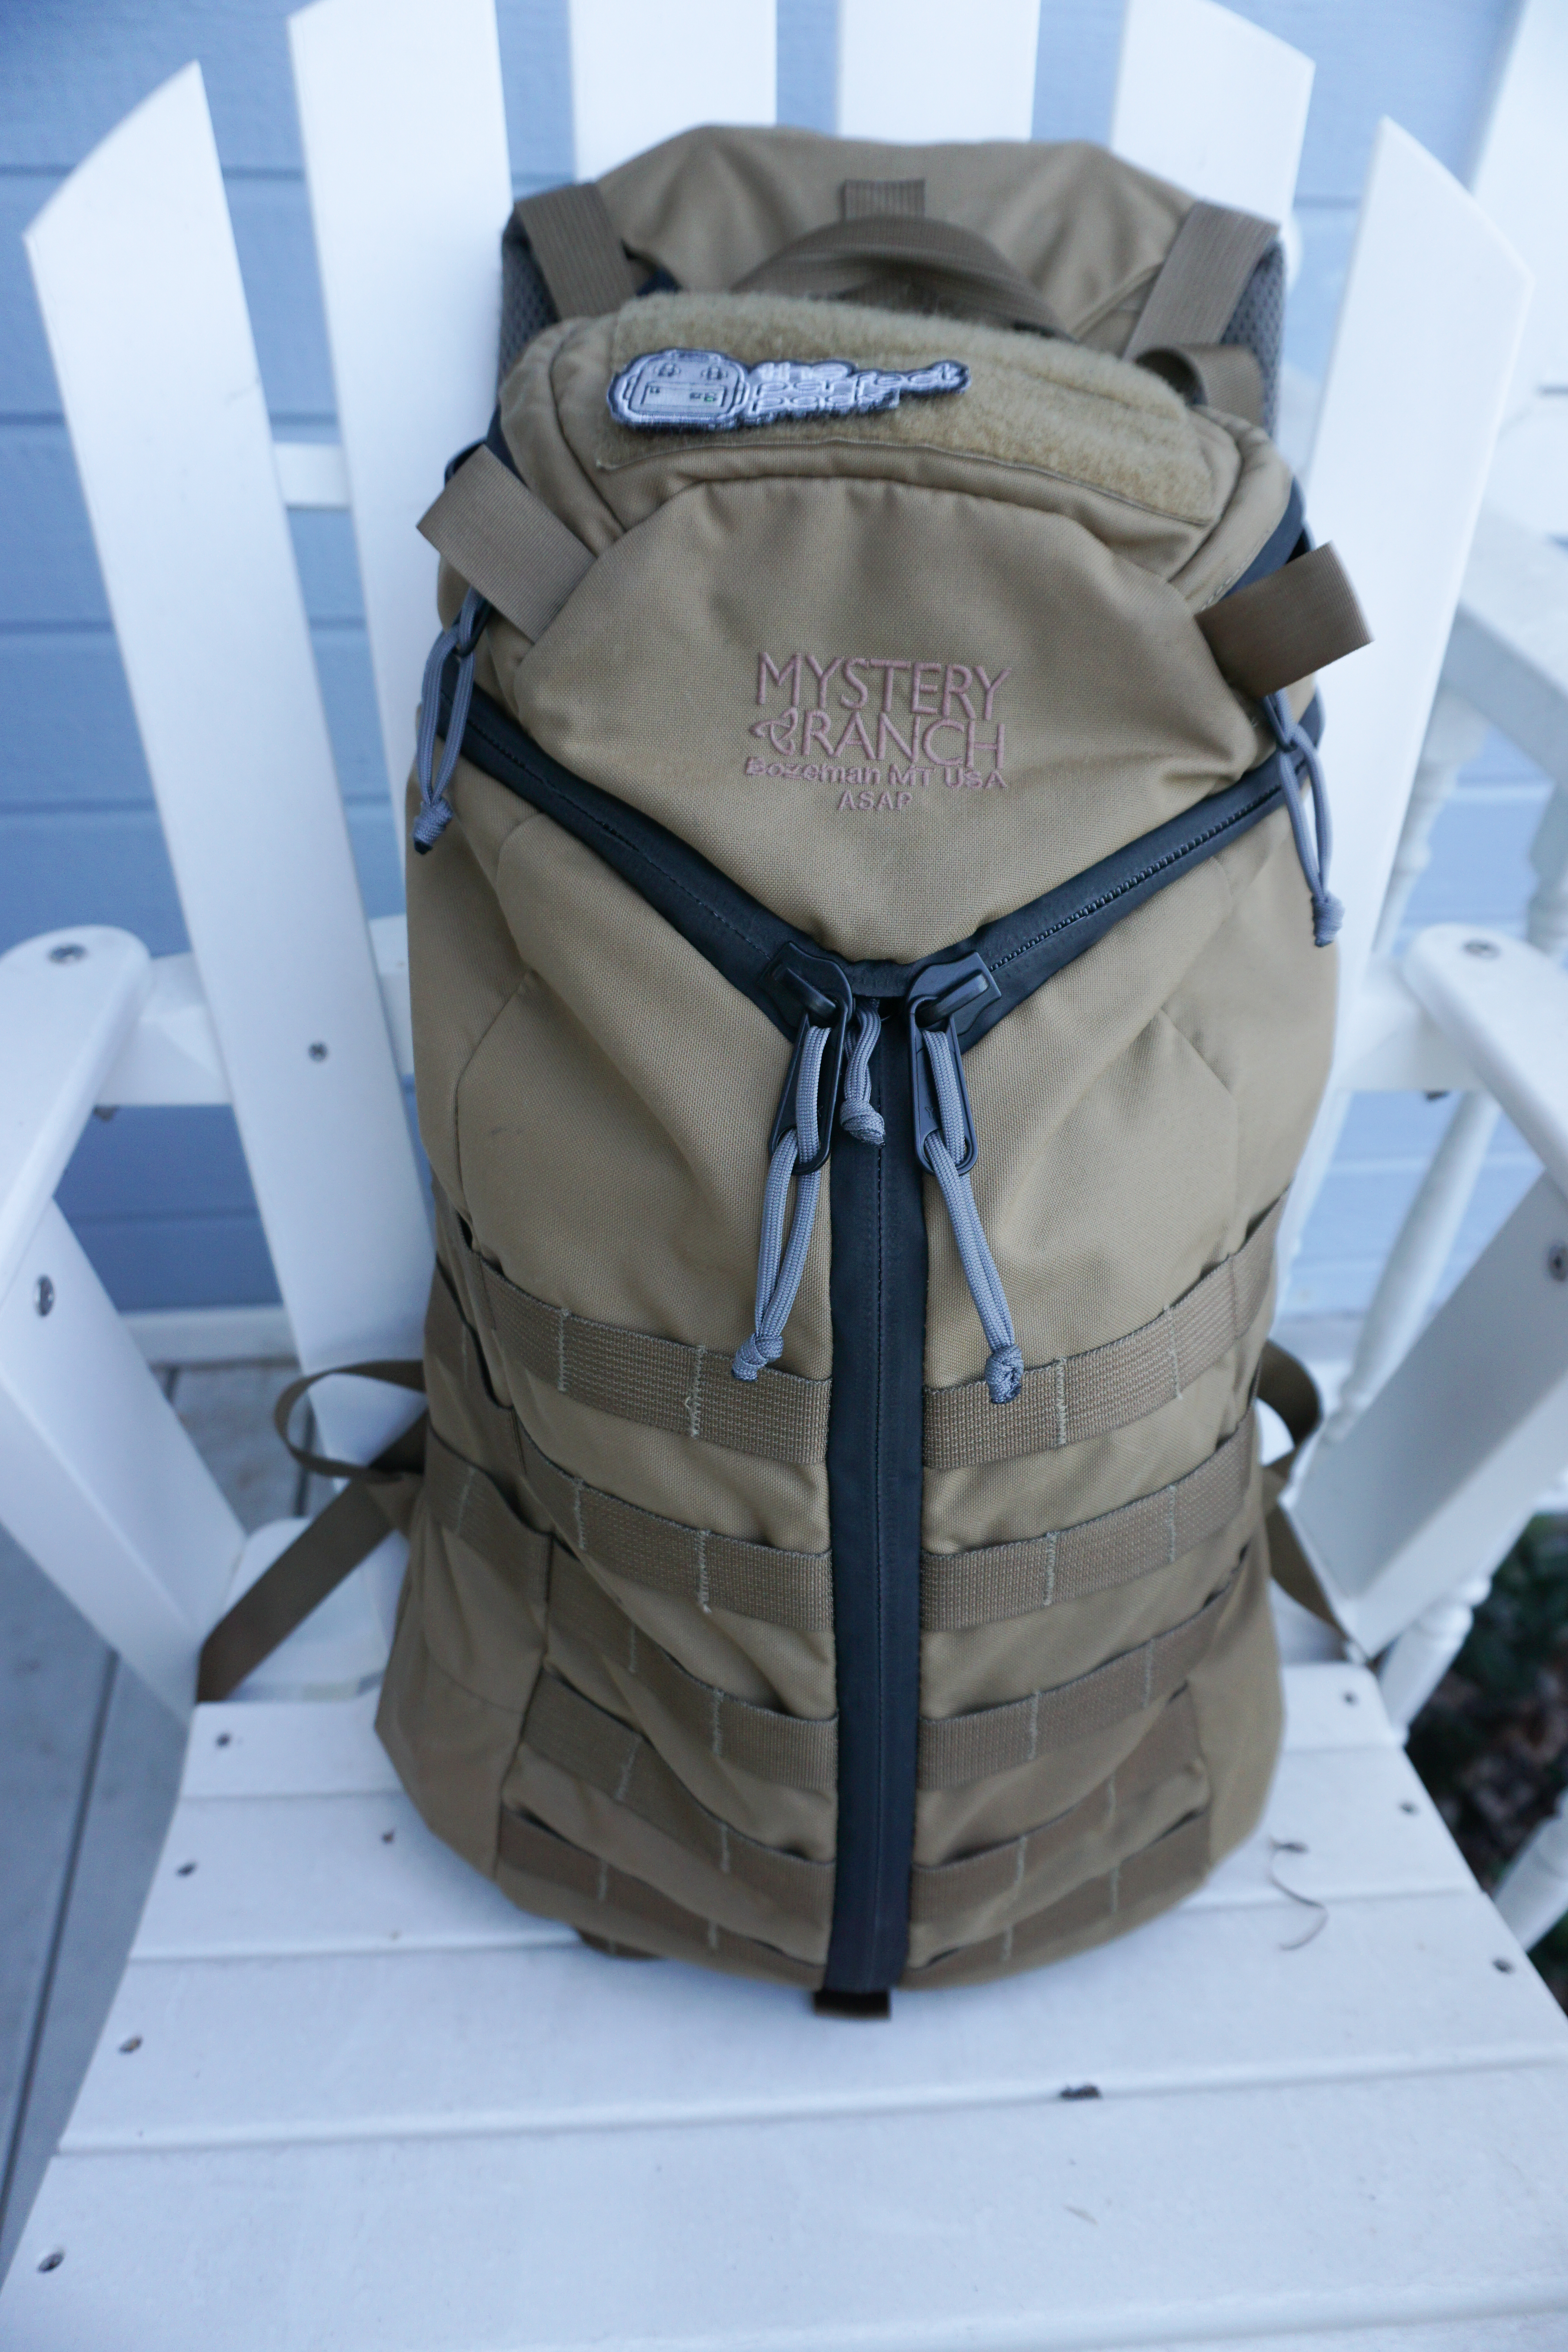 Mystery Ranch ASAP review webbing rows